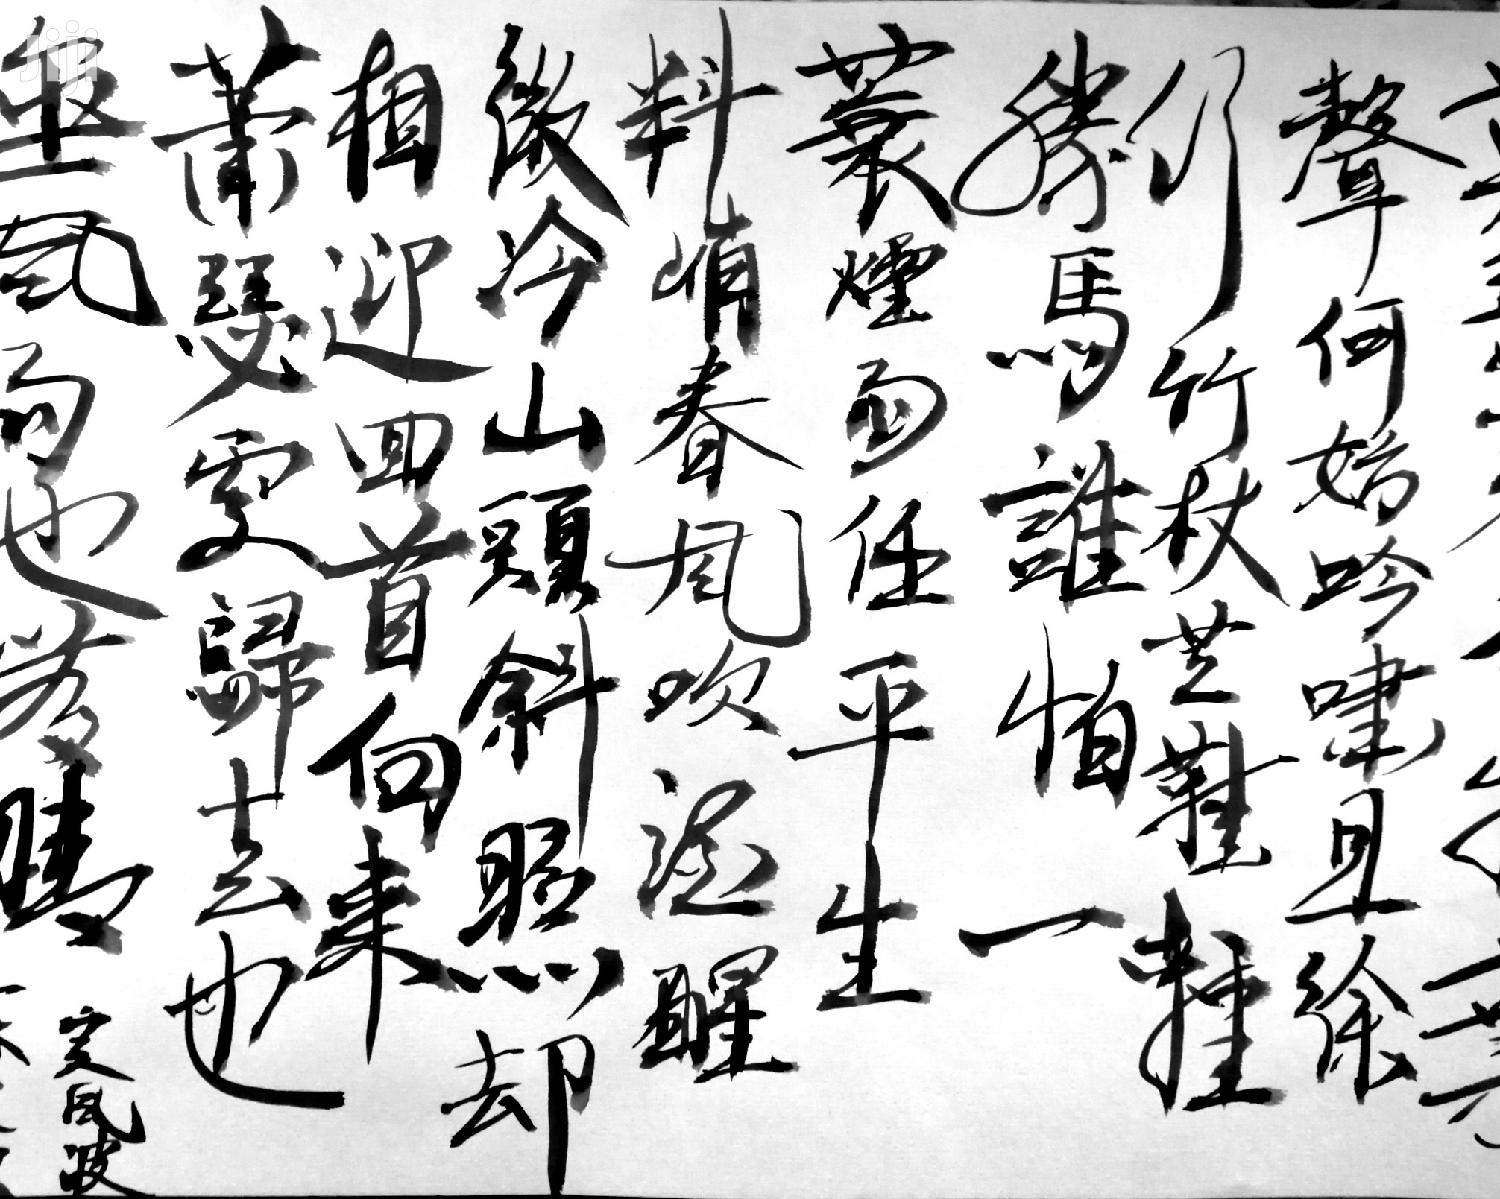 Archive: Chinese Calligraphy Artwork Poem